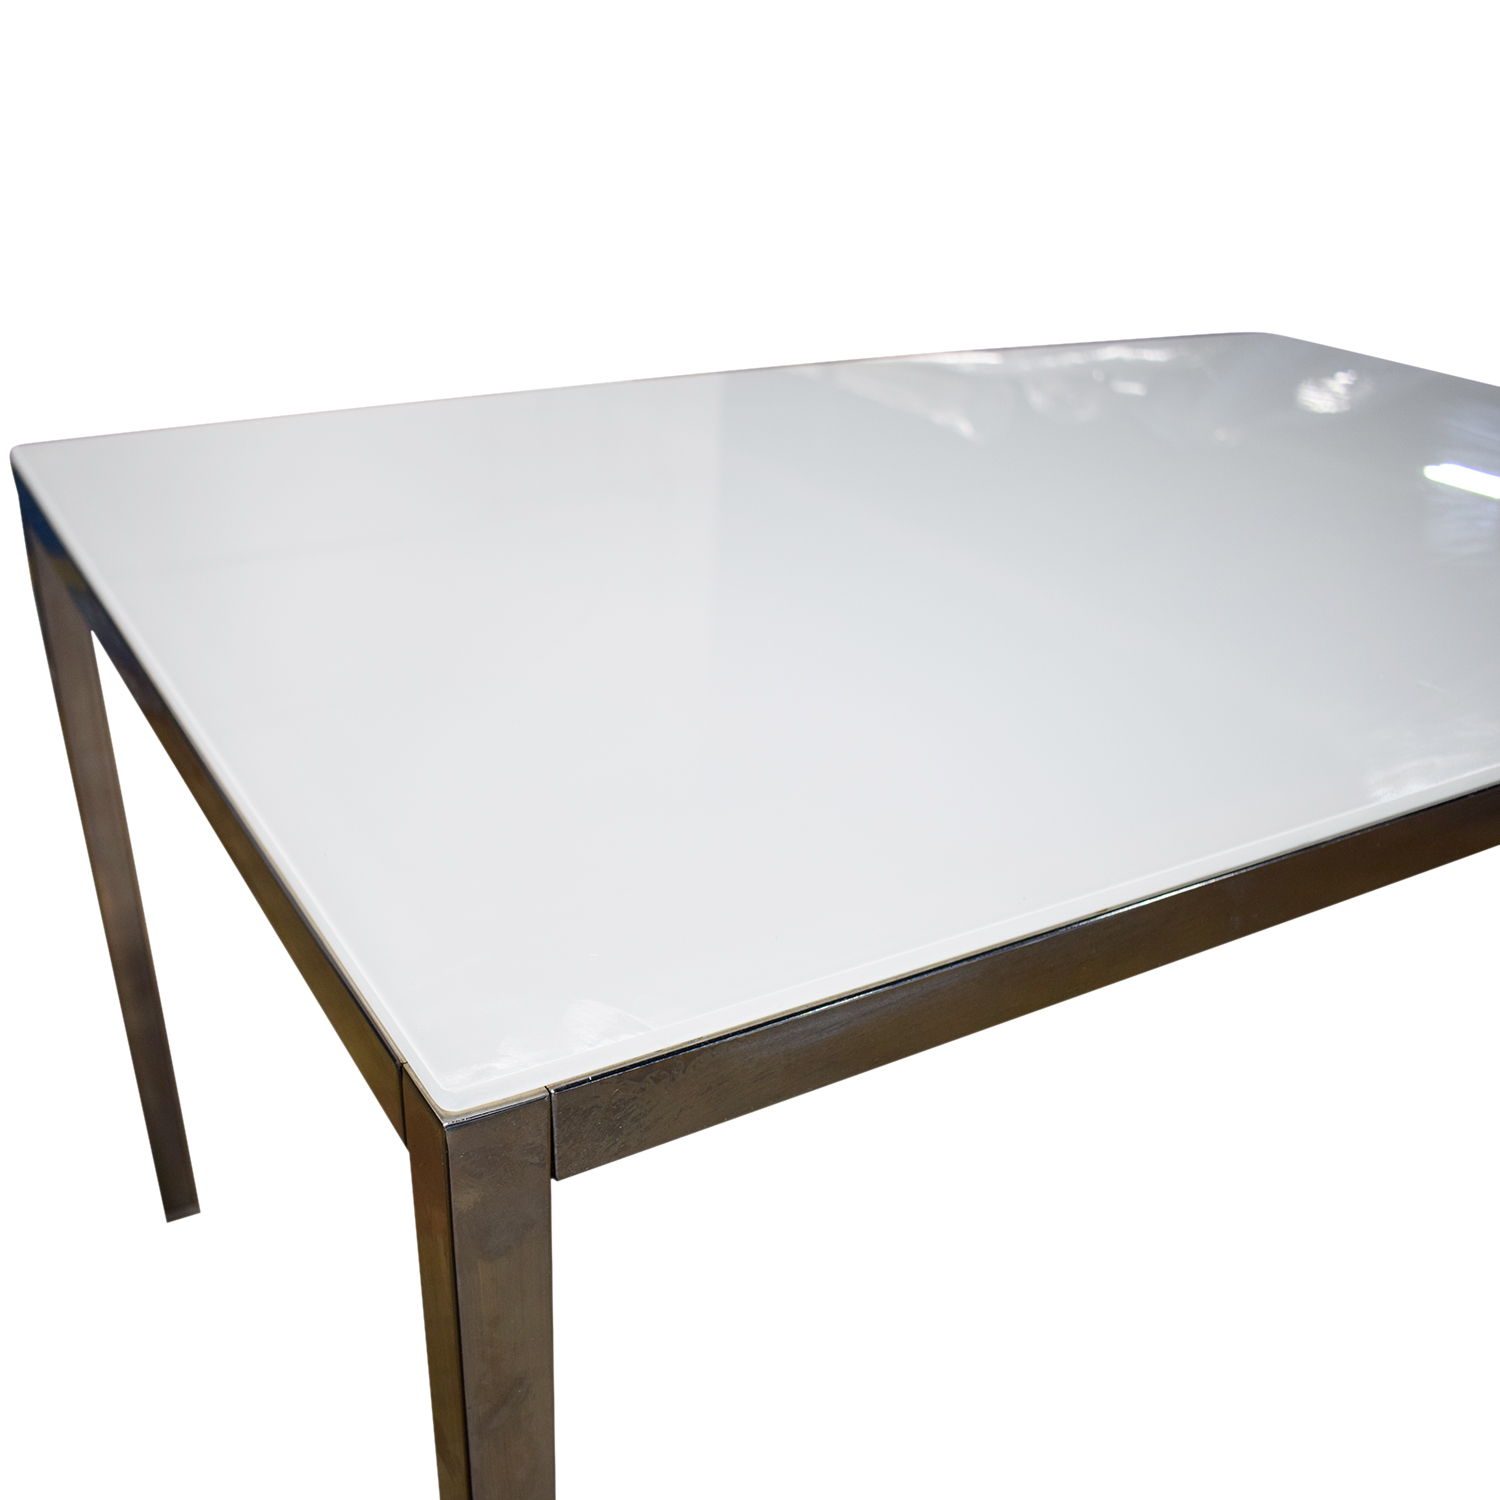 White Dining Table Ikea: IKEA IKEA White Top And Chrome Base Dining Table